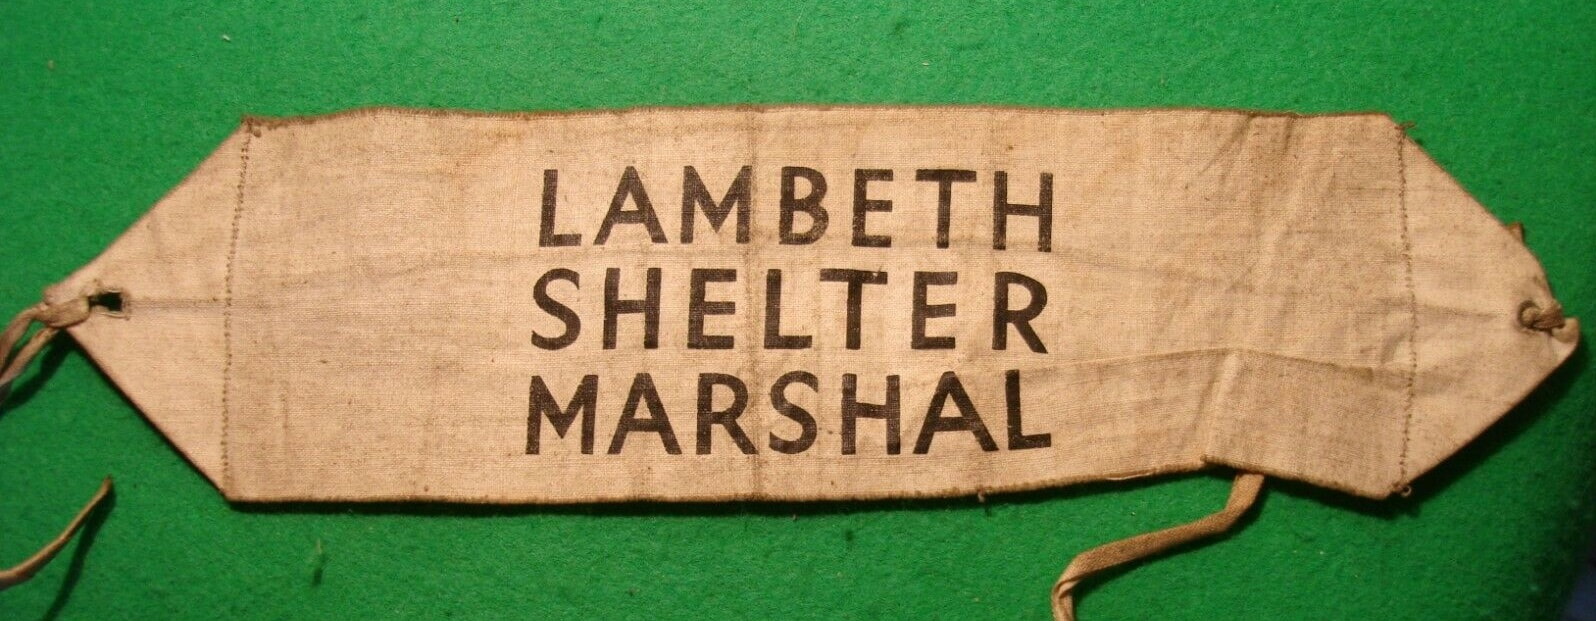 Lambeth Shelter Marshal Armband